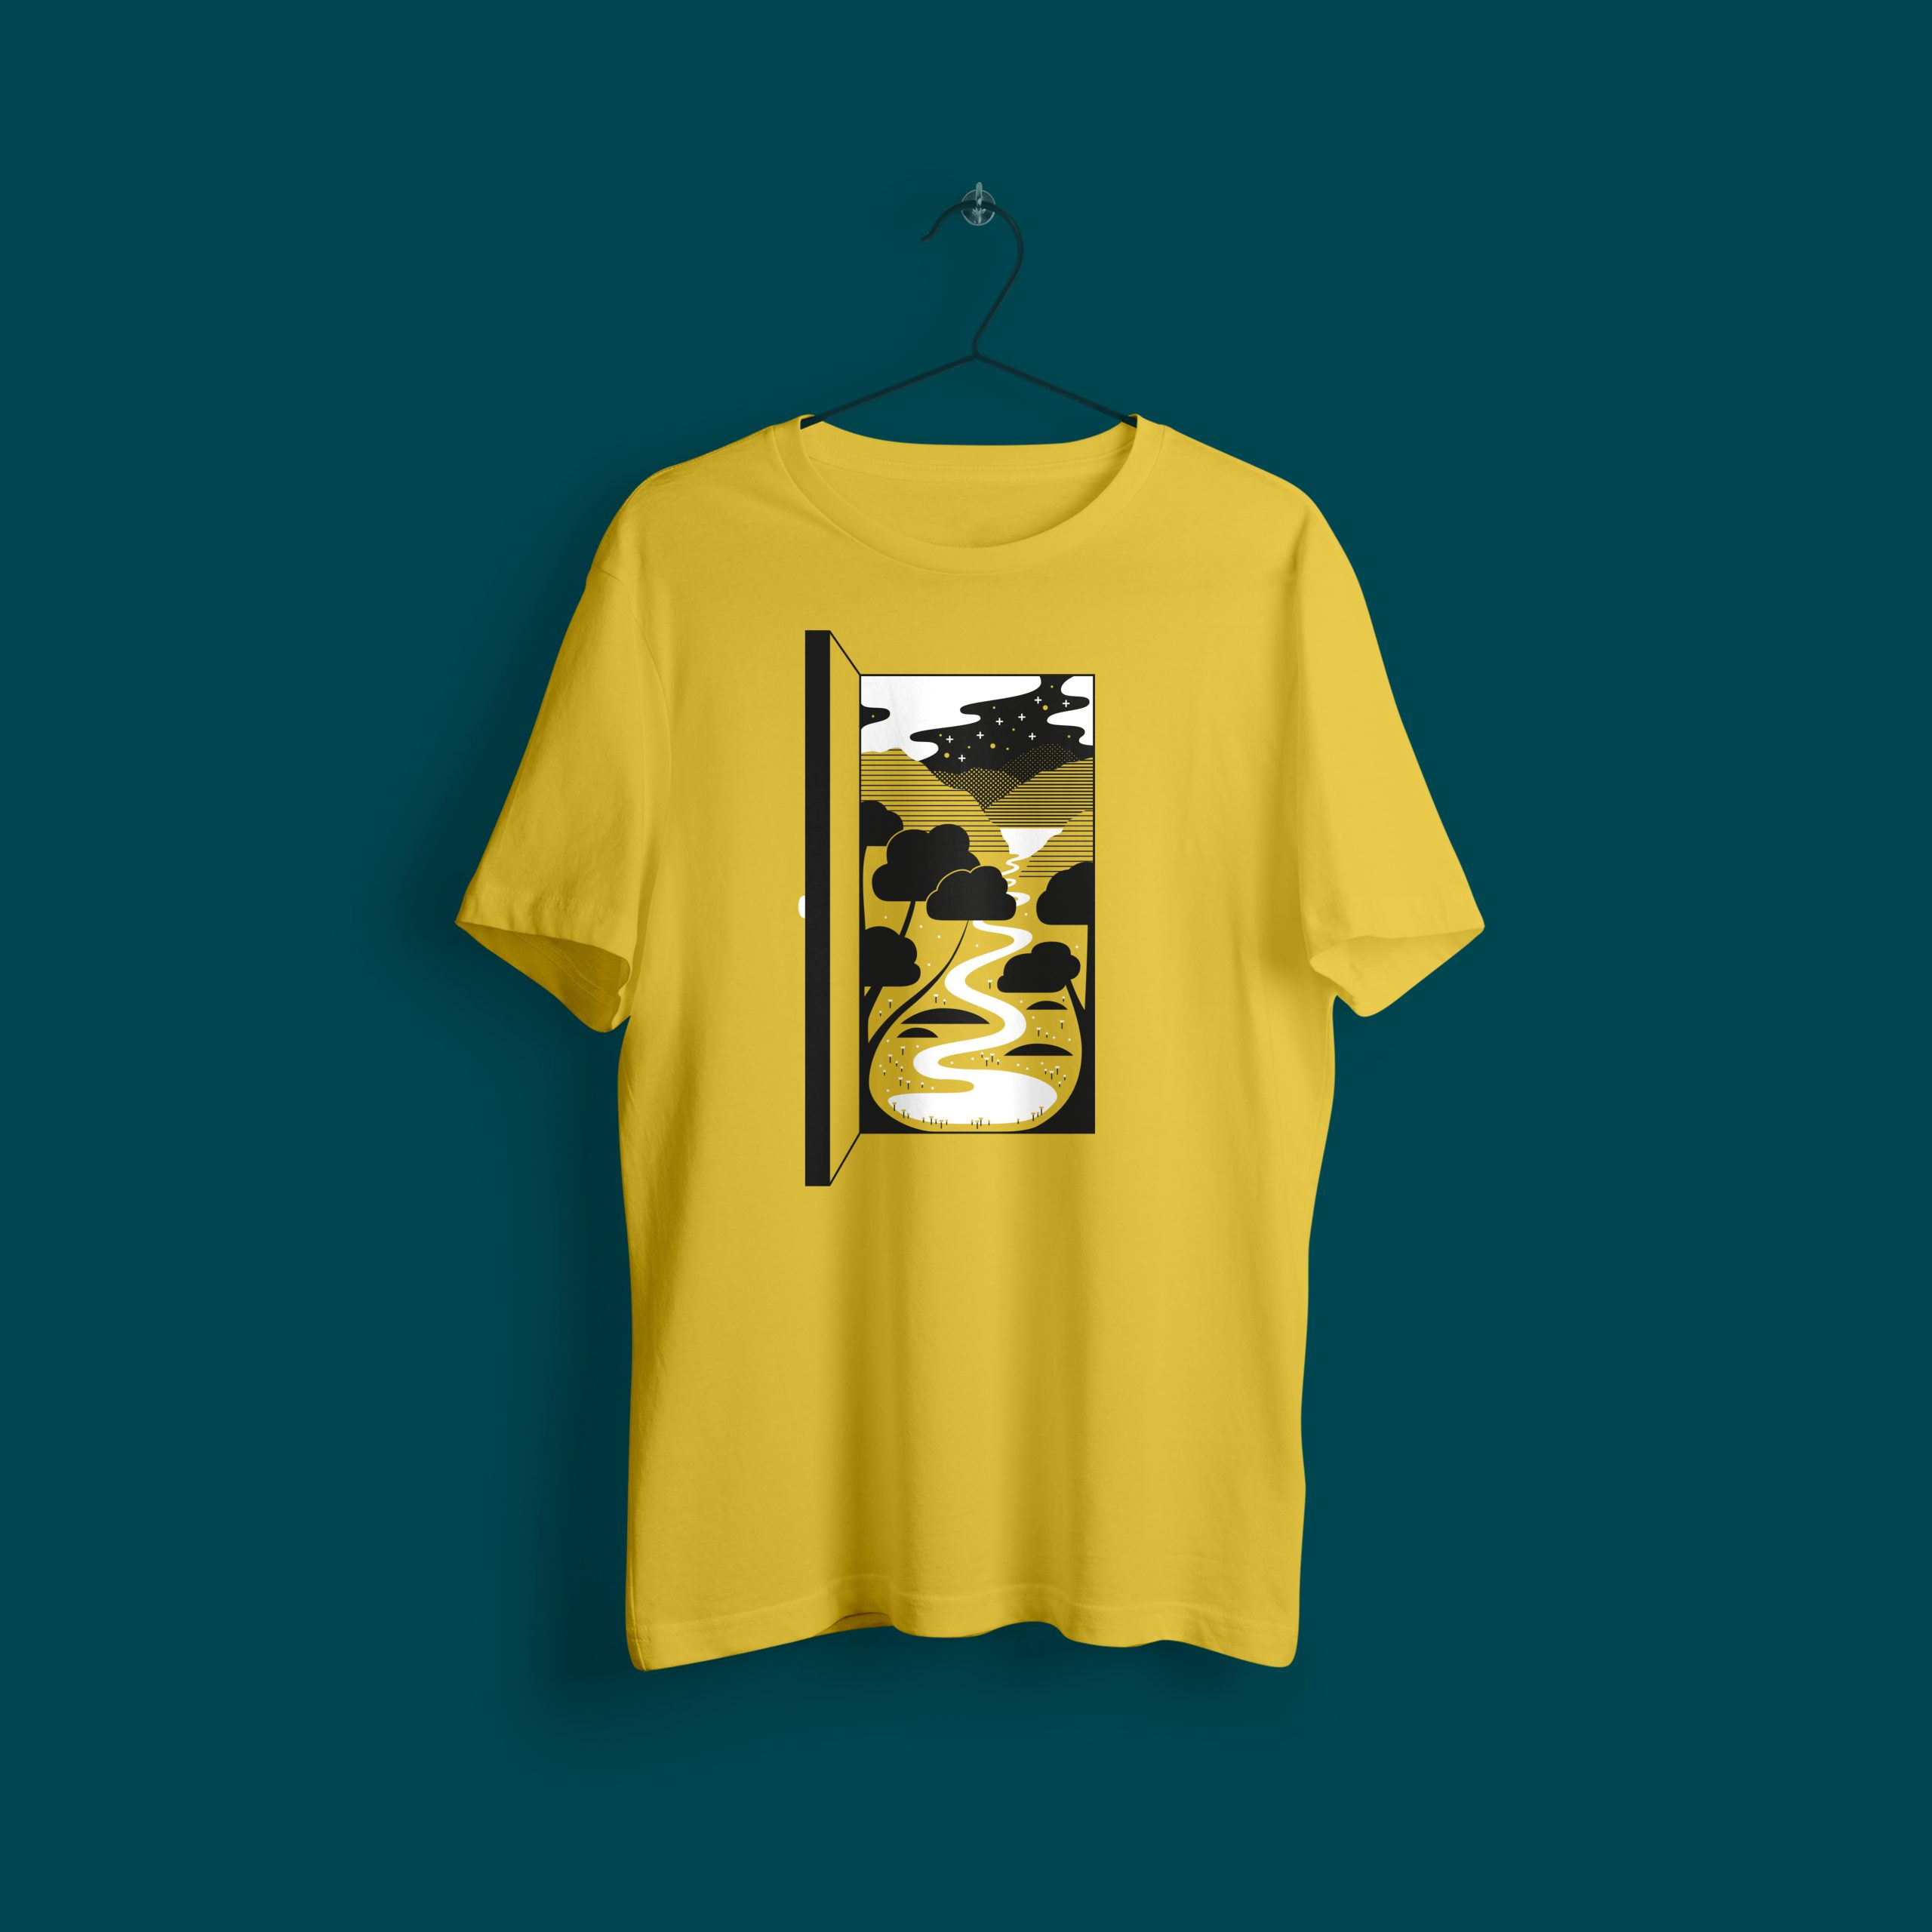 Mockup of a yellow t-shirt with an illustration of an open doorway within it you can see trees, flowers, a river a lake and mountains, with stars in the night sky too.